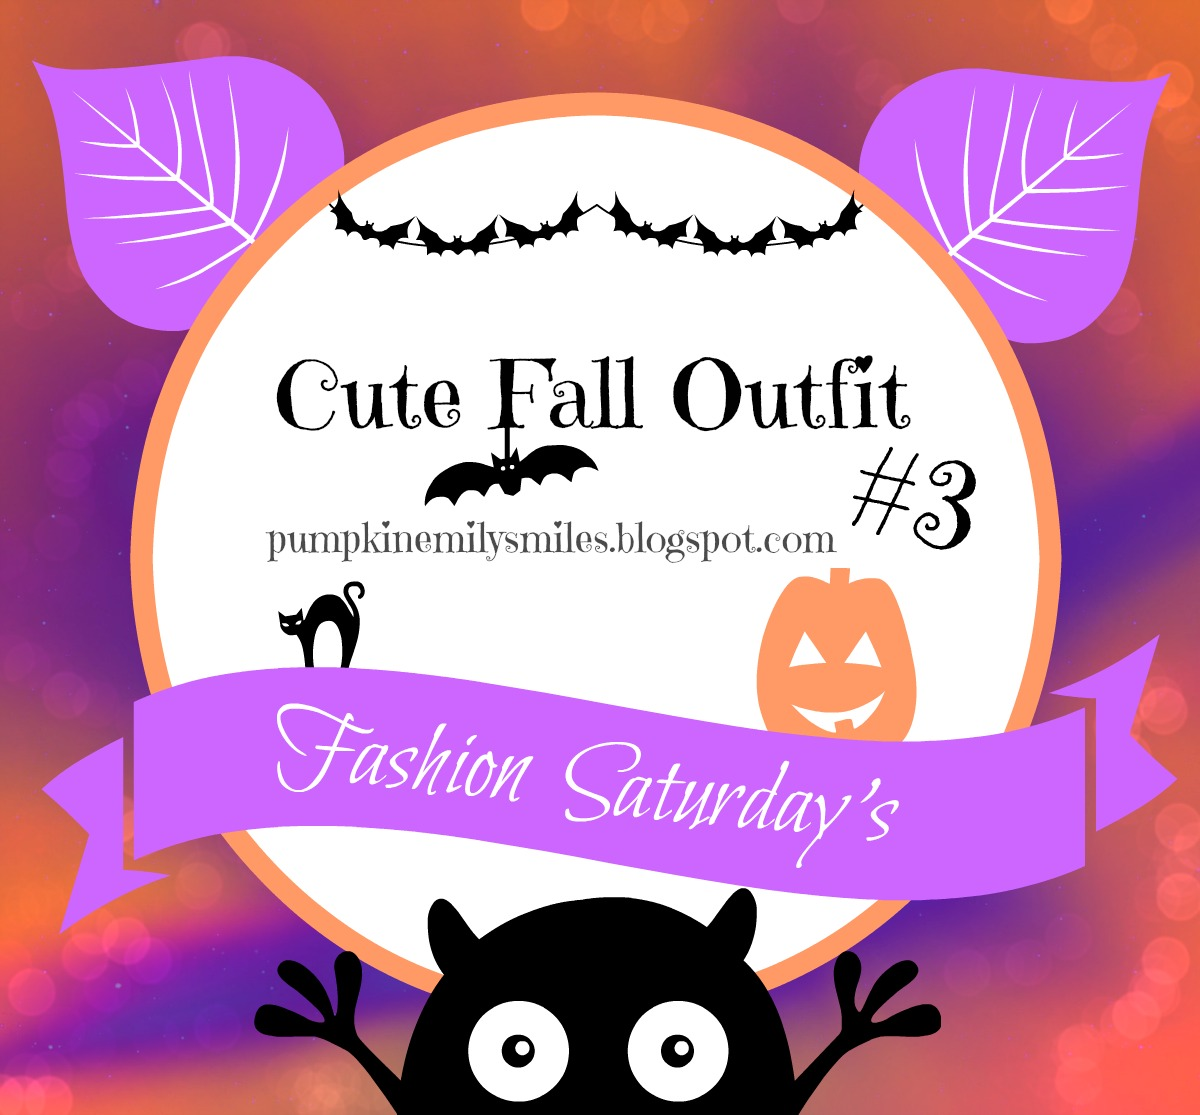 Cute Fall Outfit #3 Fashion Saturday's